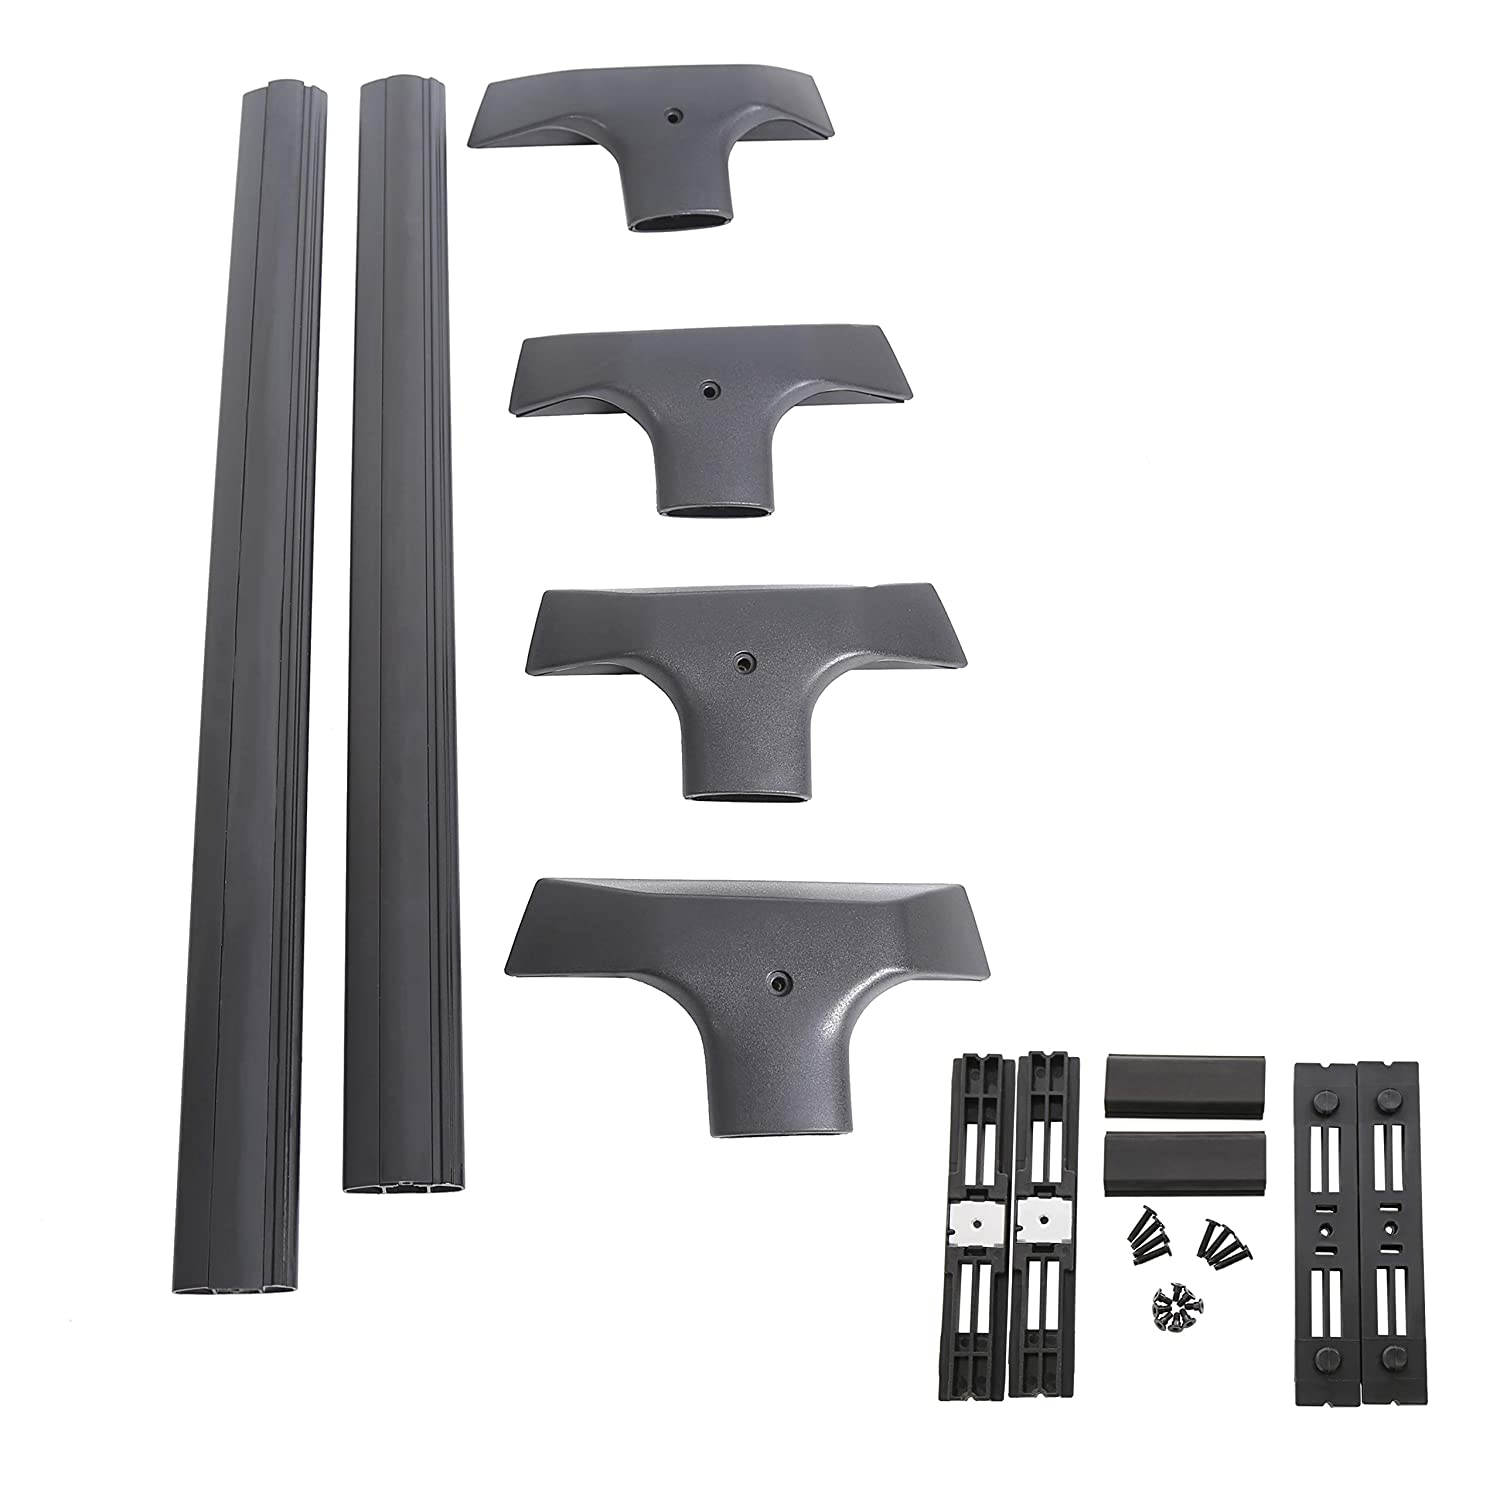 7BLACKSMITHS Removable Aluminum Roof Rack Cross Bars for 2009-2017 Chevy Chevrolet Traverse-NOT Included C Channel